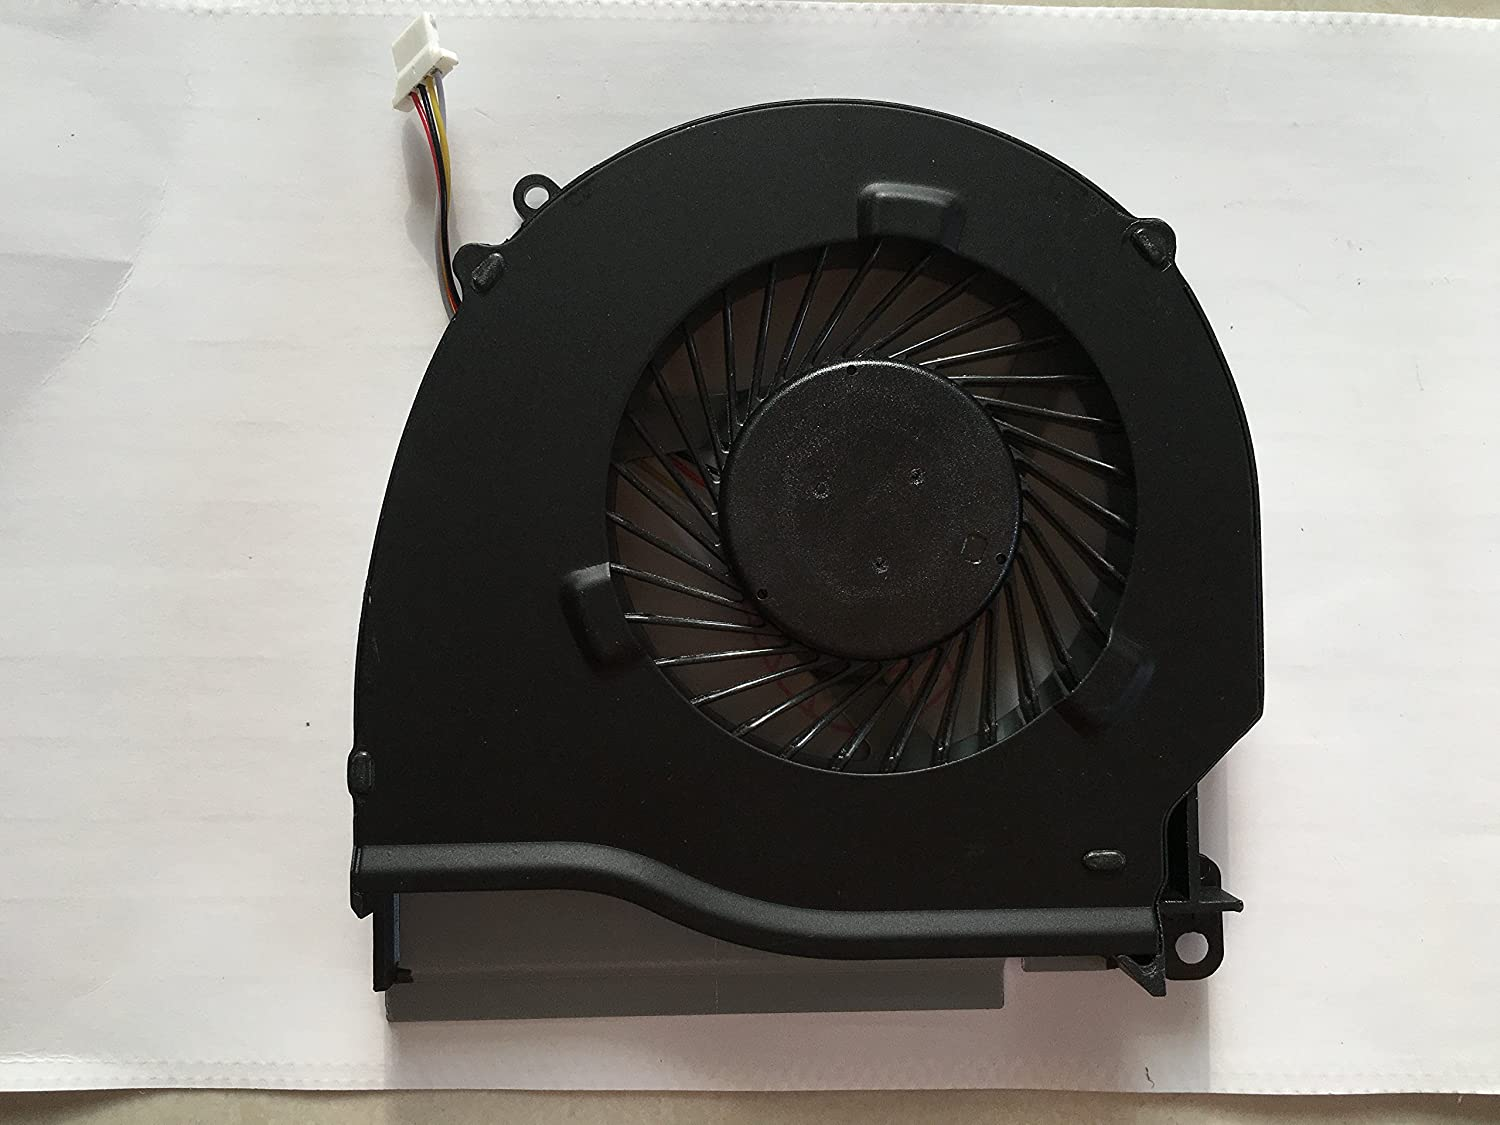 HK-part Replacement Fan for Dell Inspiron 15-7000 15-7557 15-7559 Inspiron 7557 7559 Series Cpu Cooling Fan DP/N 04X5CY CN-04X5CY